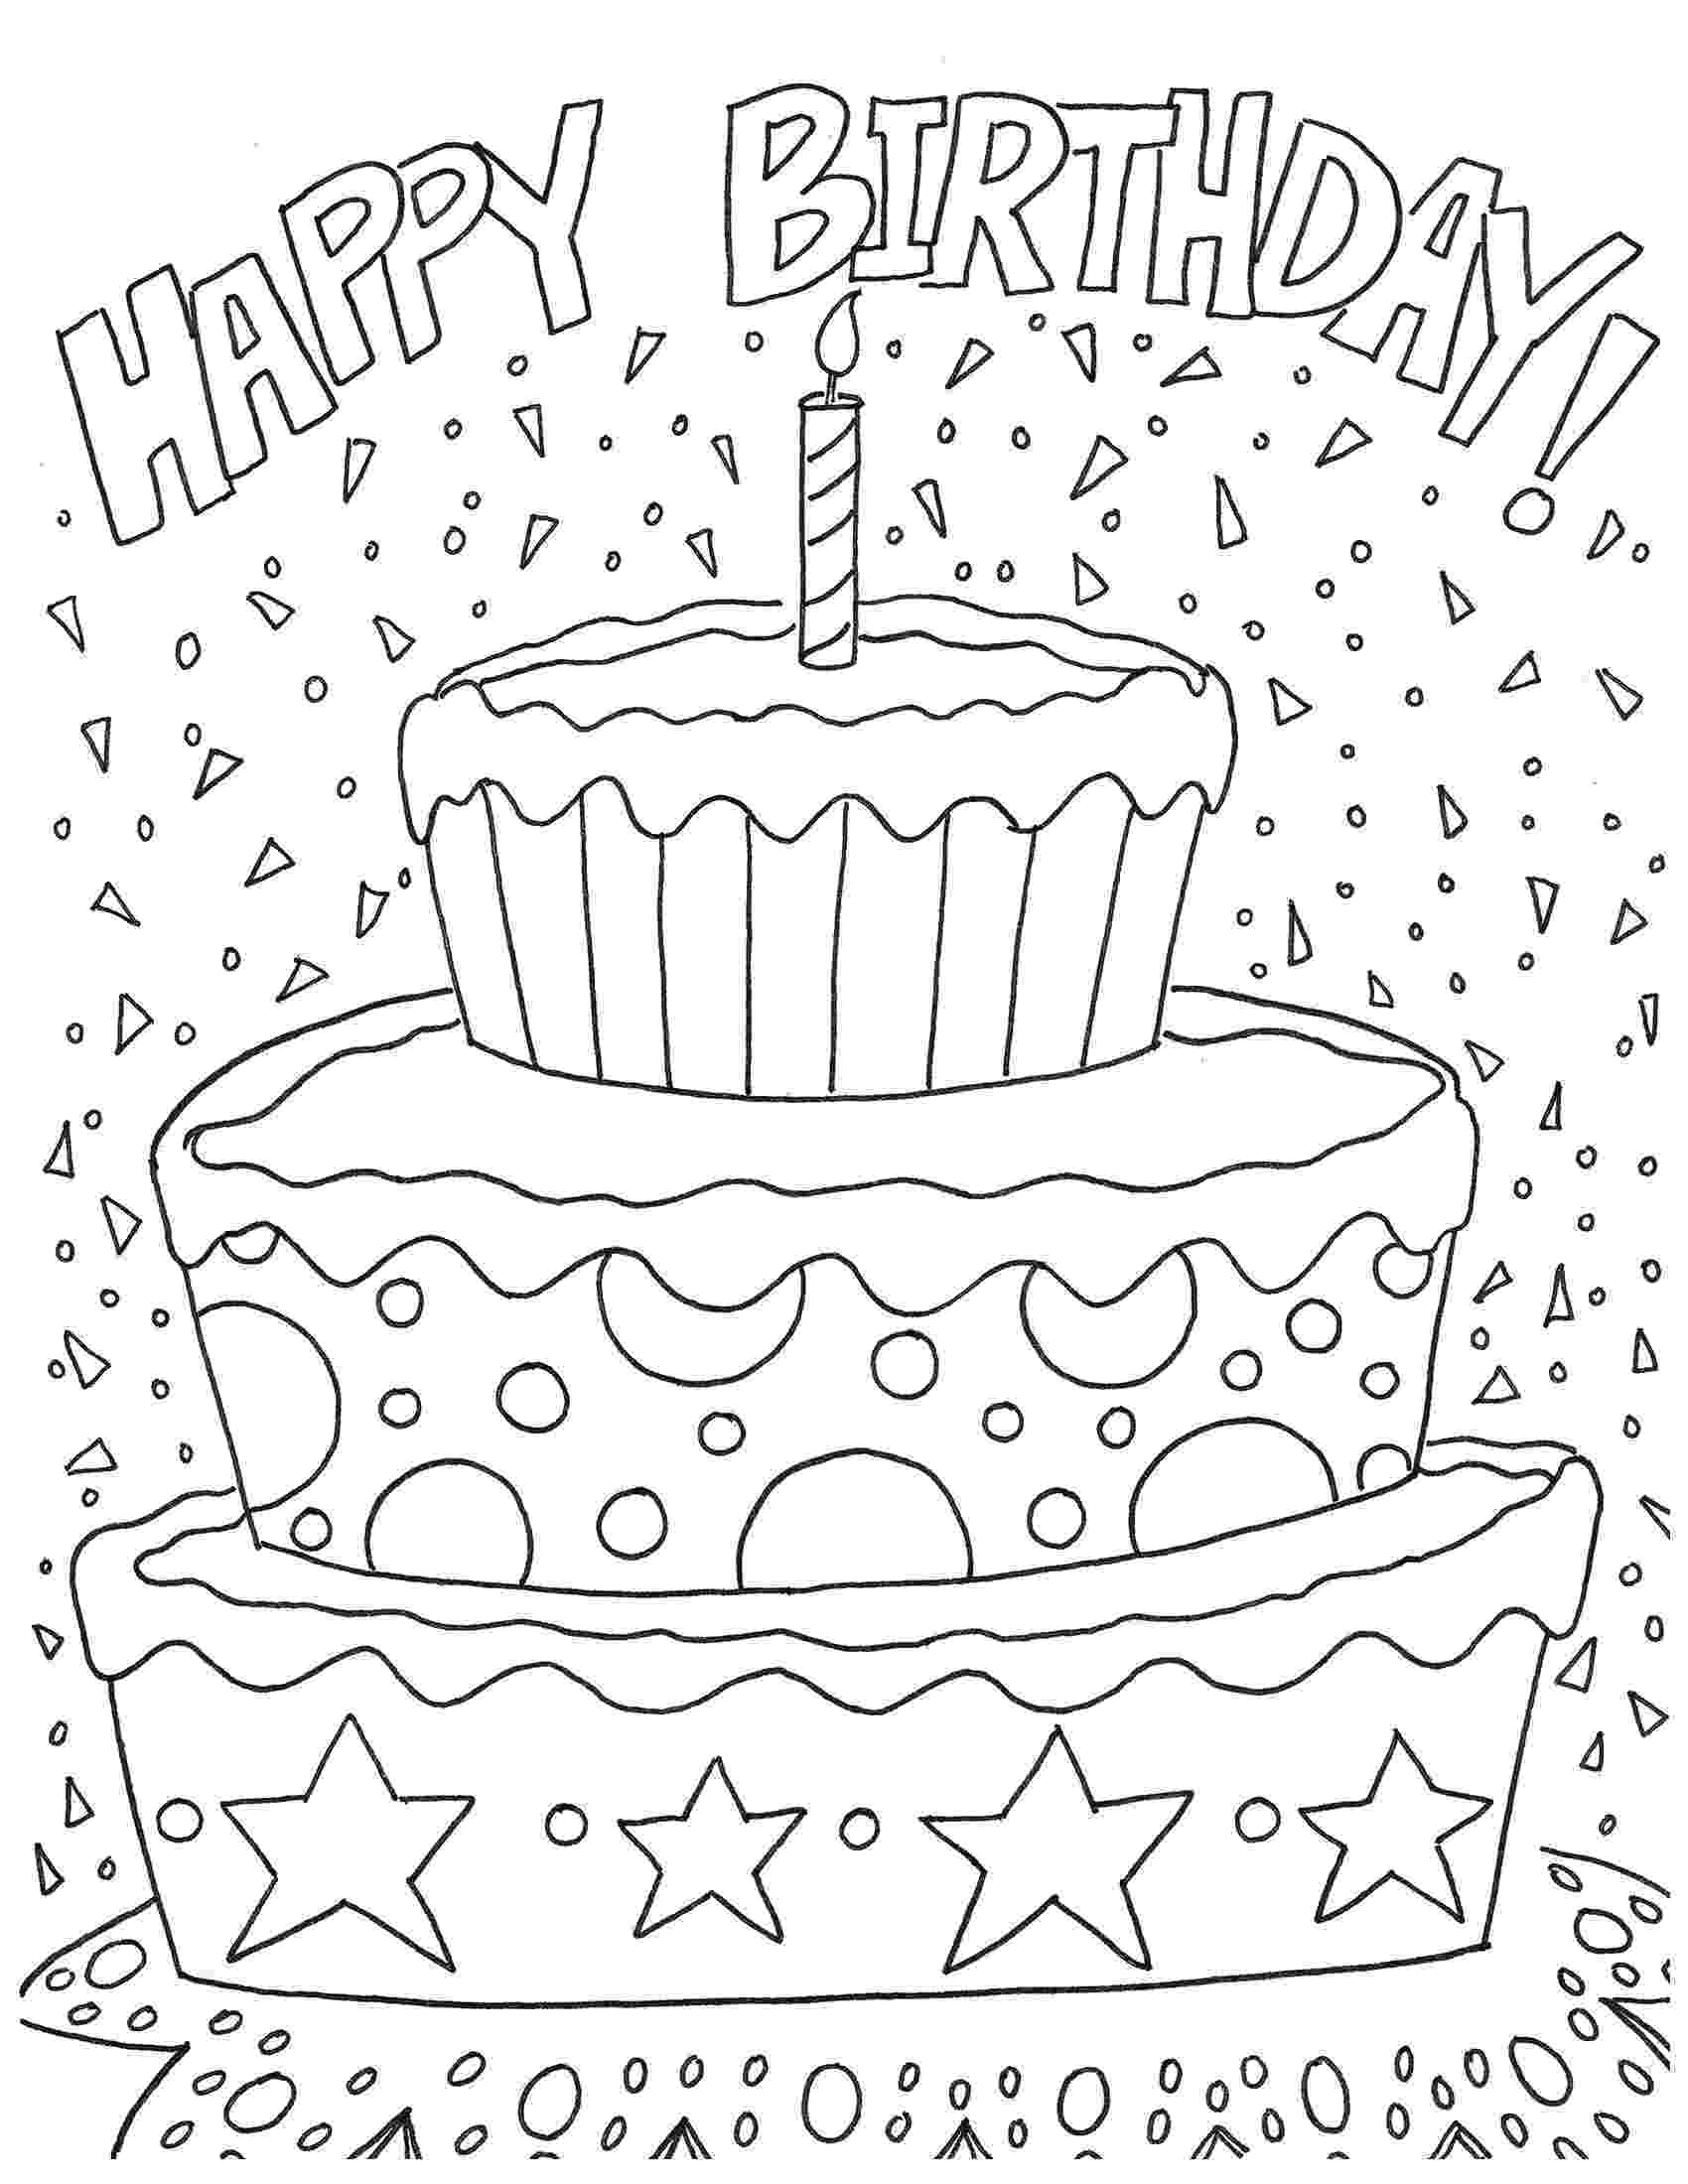 happy birthday coloring pages free printable happy birthday coloring pages paper trail happy birthday coloring pages